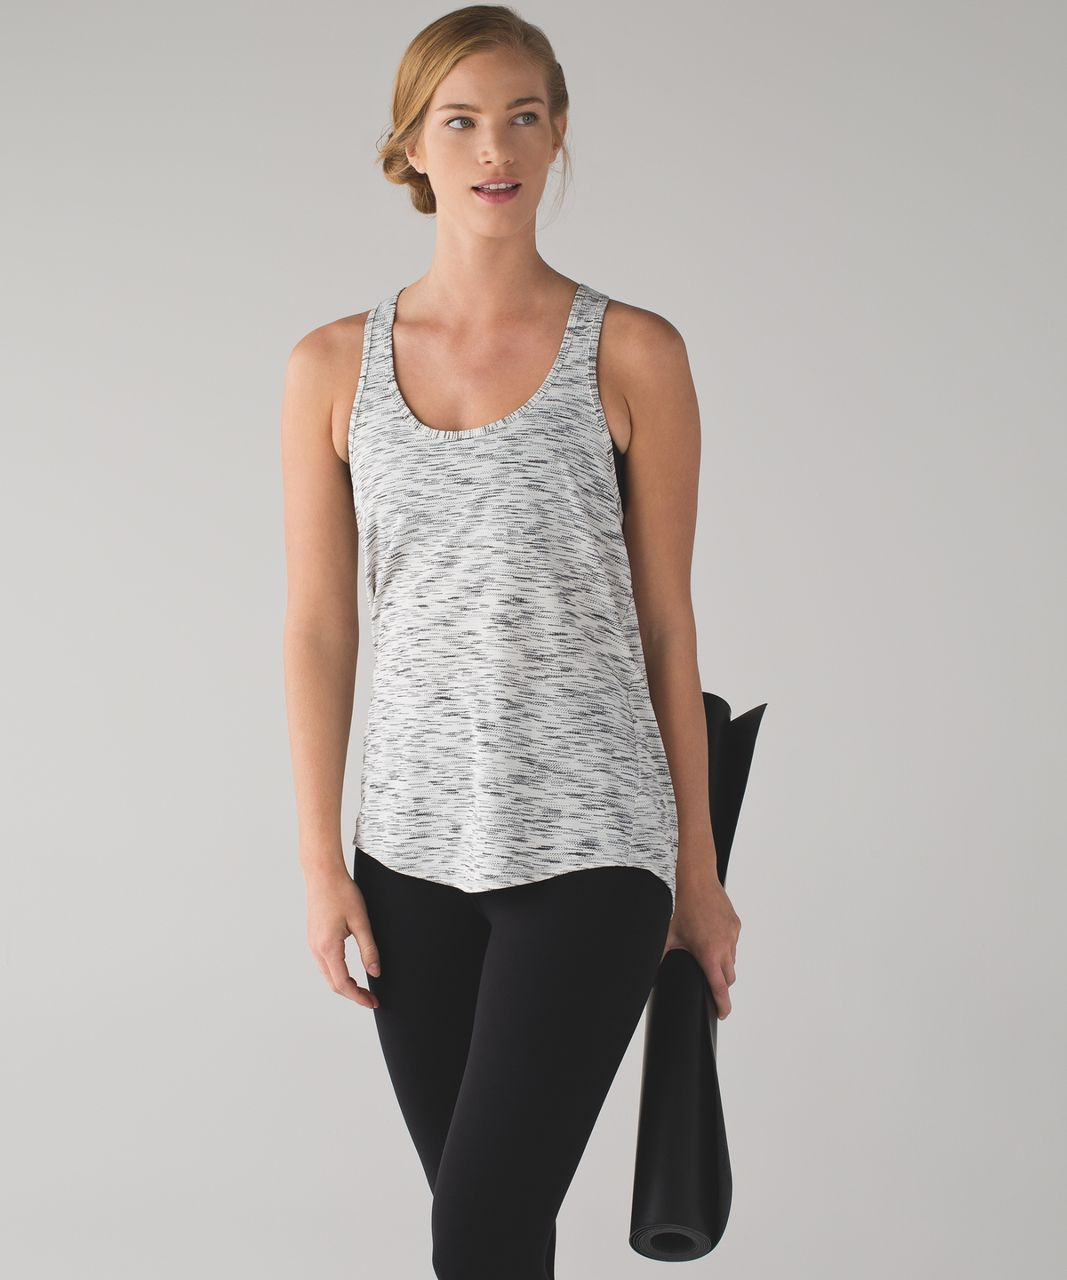 Lululemon Salute the Sun Singlet II - Tiger Space Dye Black White